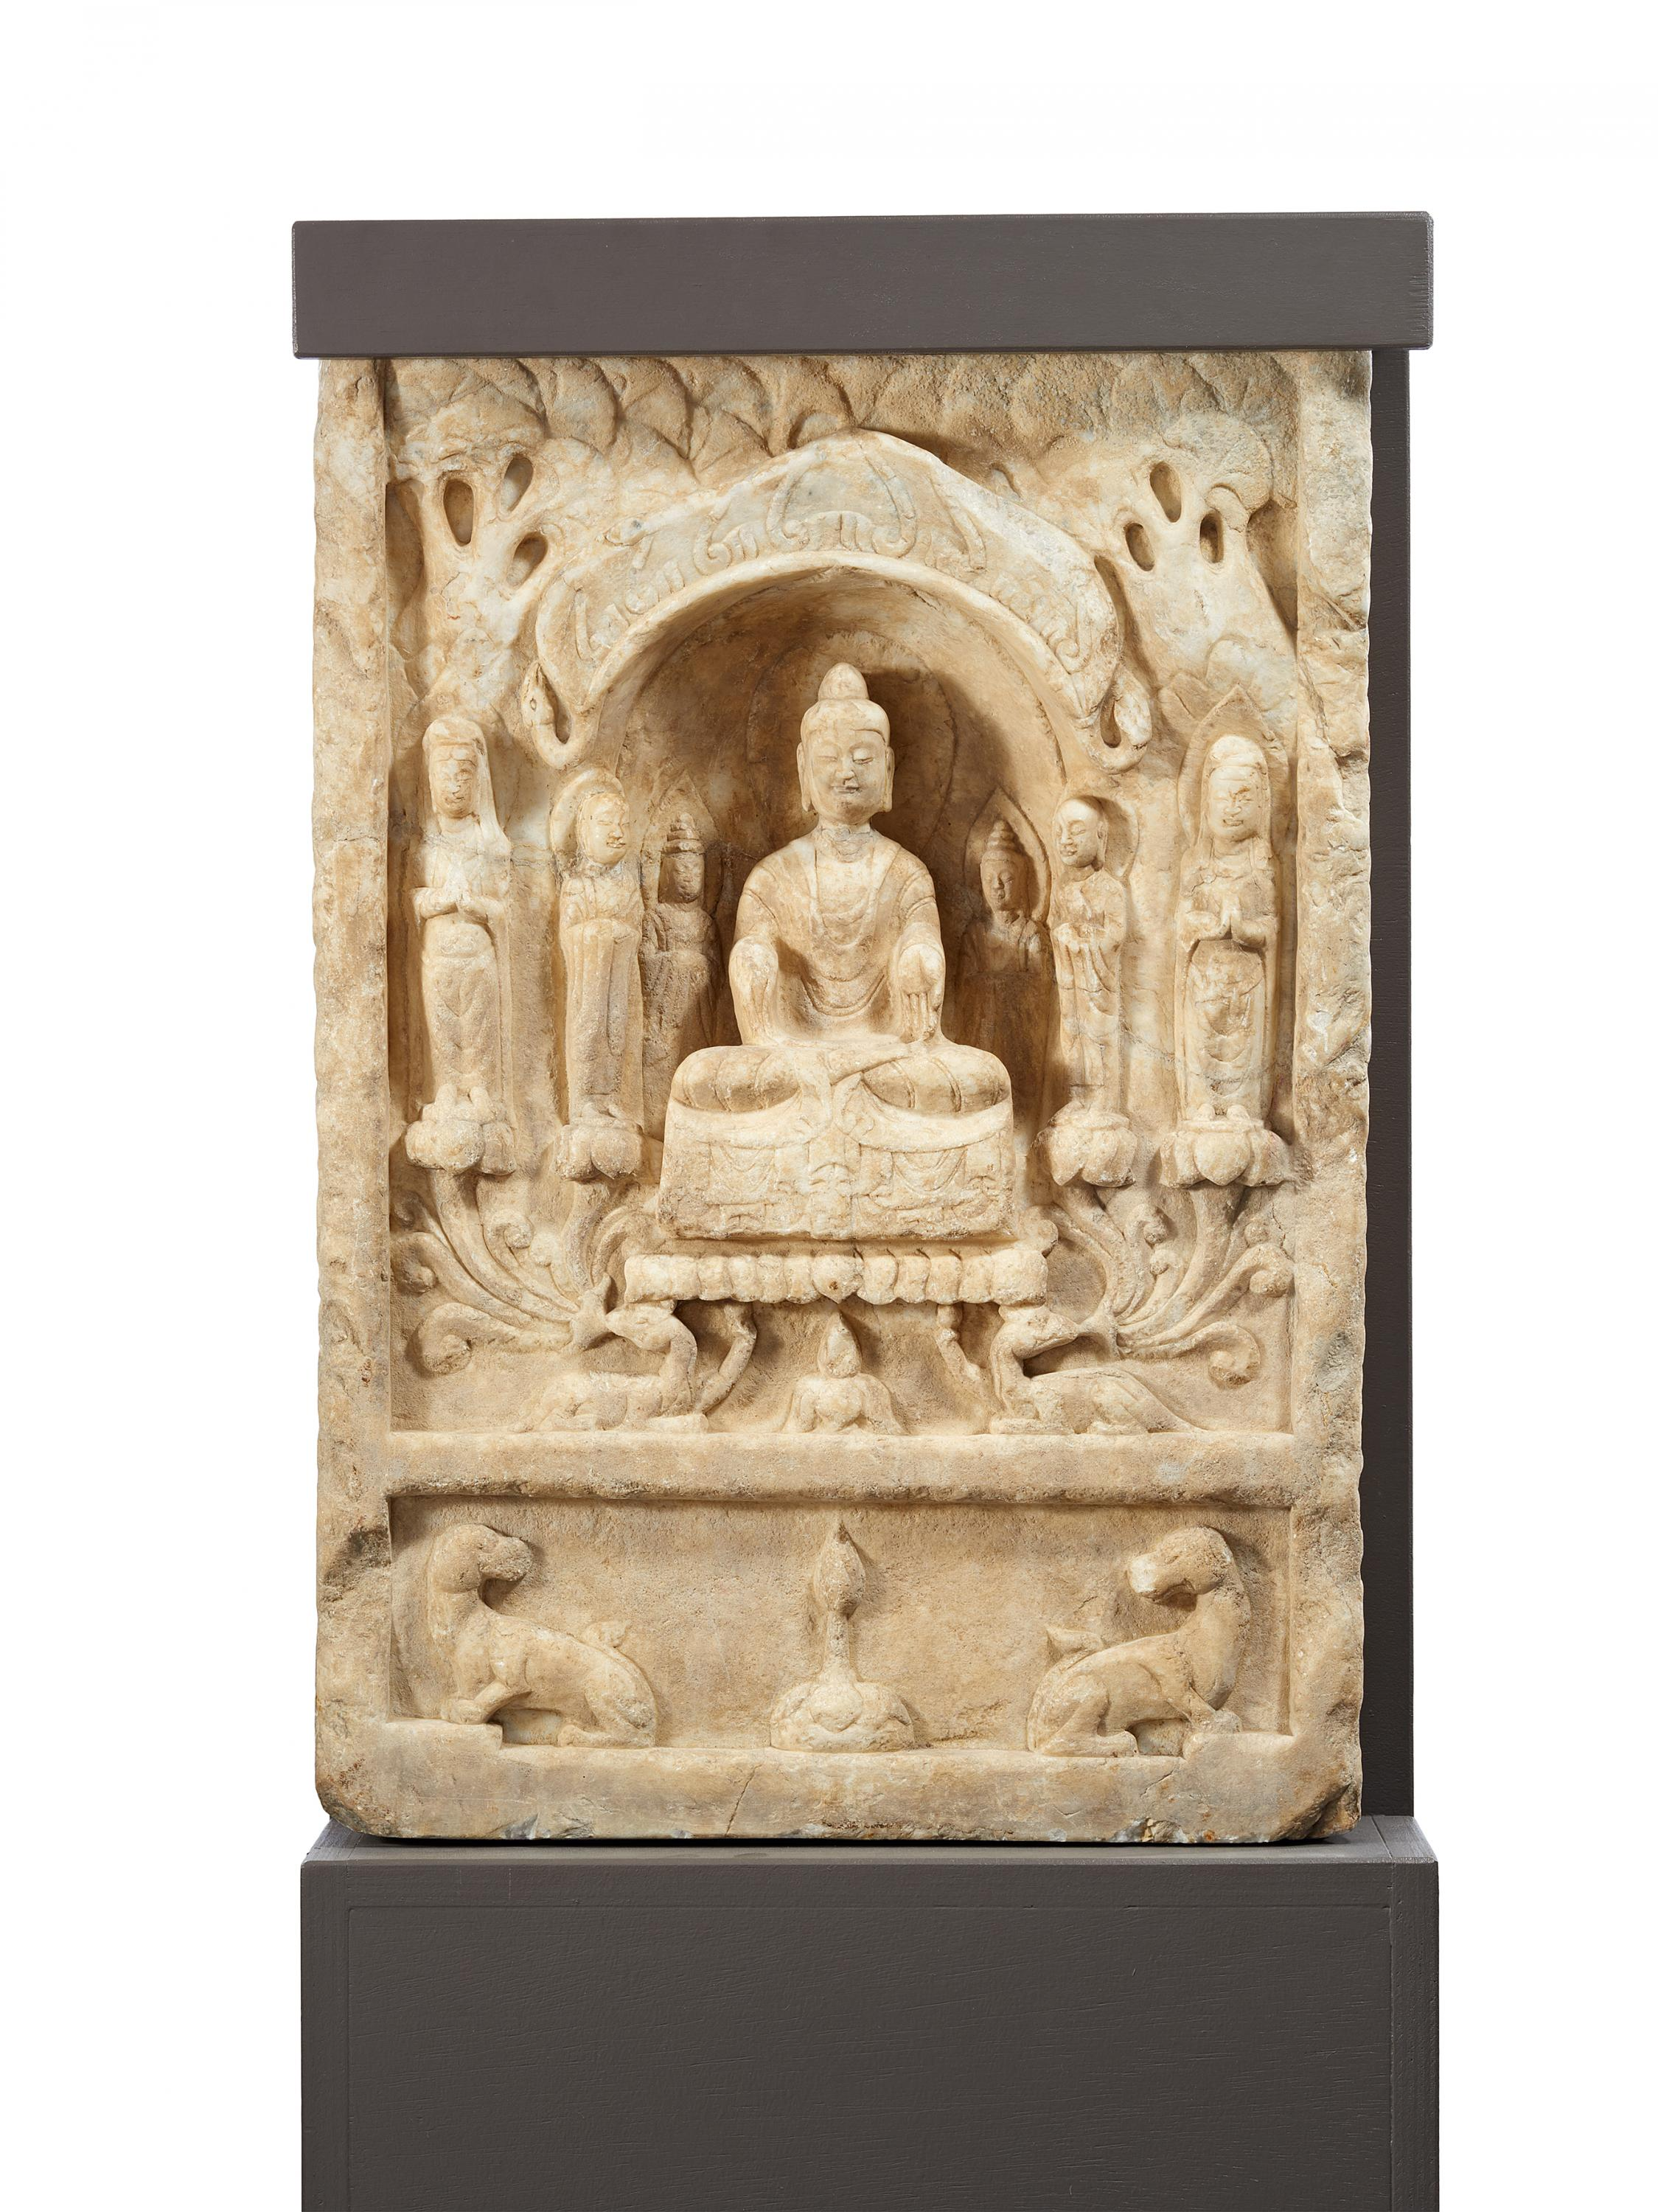 Lot 13 - STELE WITH BUDDHA, BODHISATTVA AND MONKS. Origin: China. Dynasty: Northern and Southern dynasties (